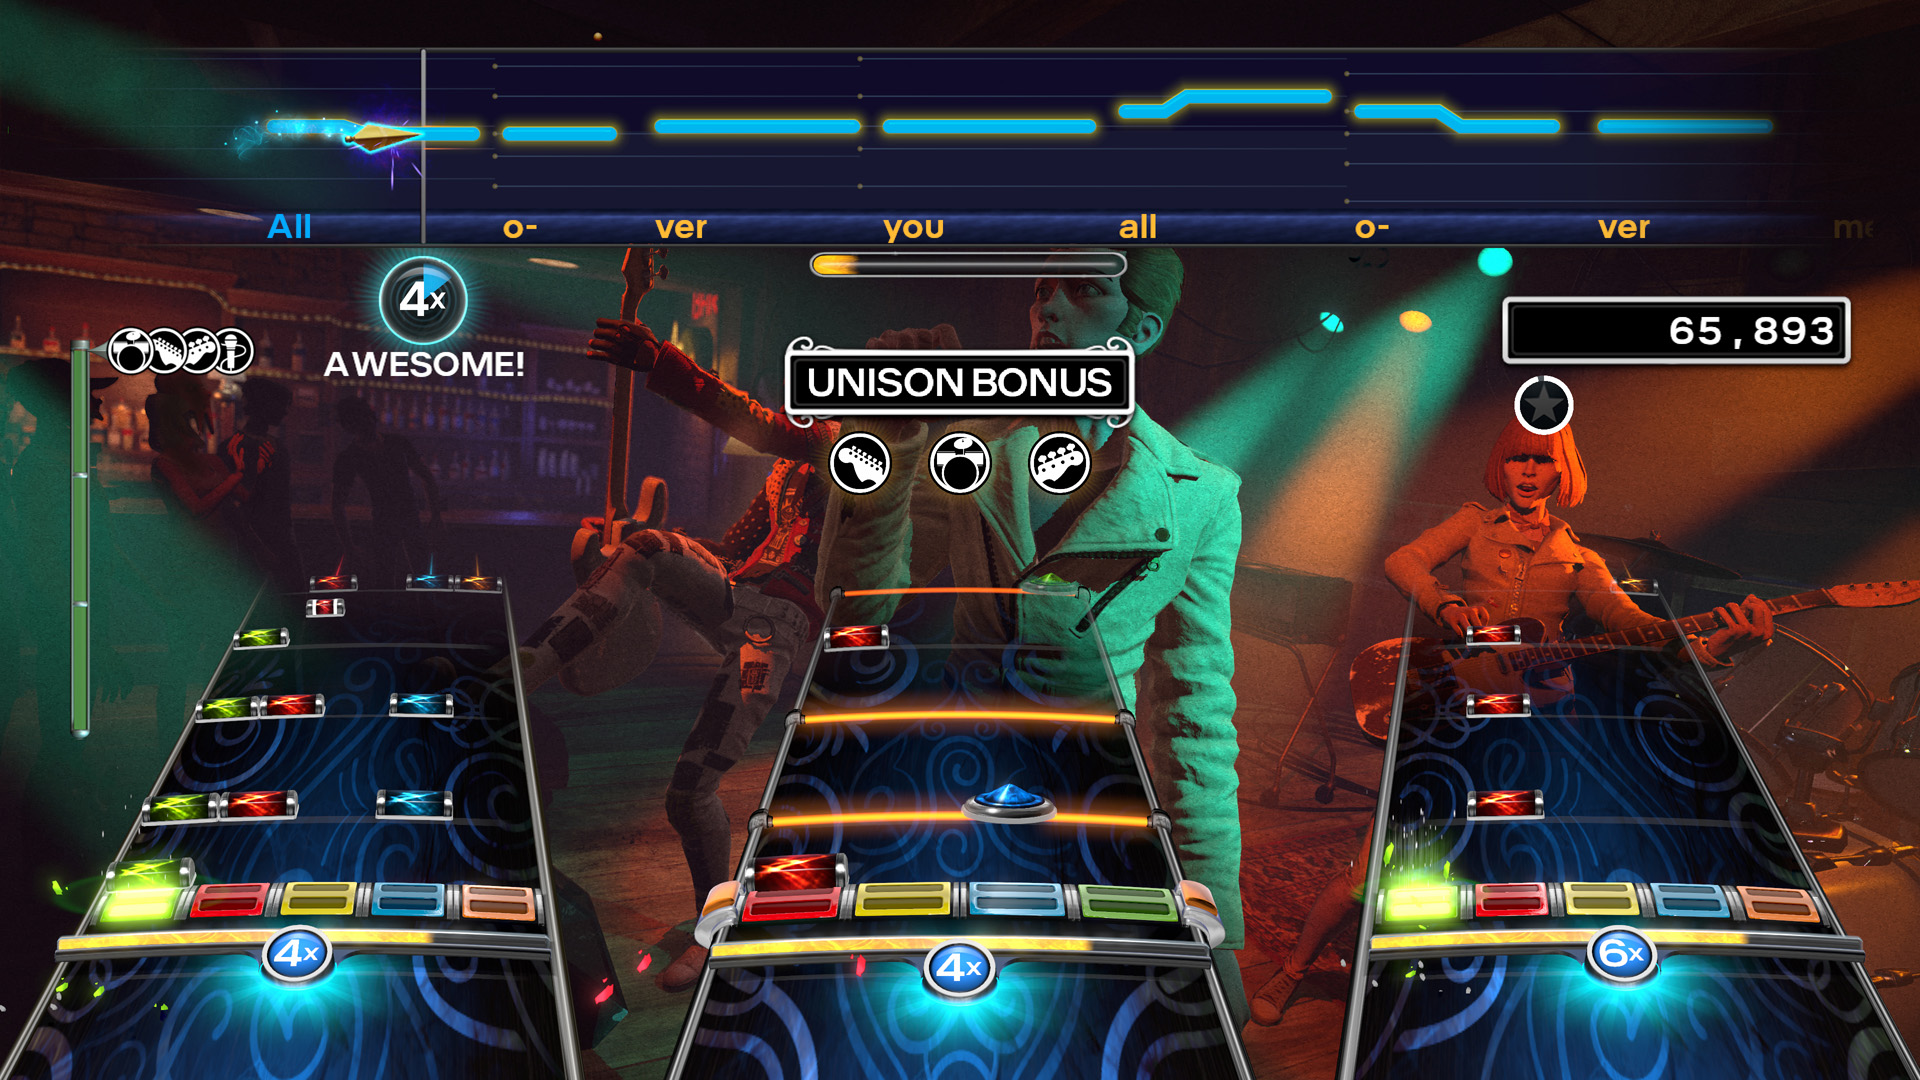 17 More Tracks Announced For Rock Band 4